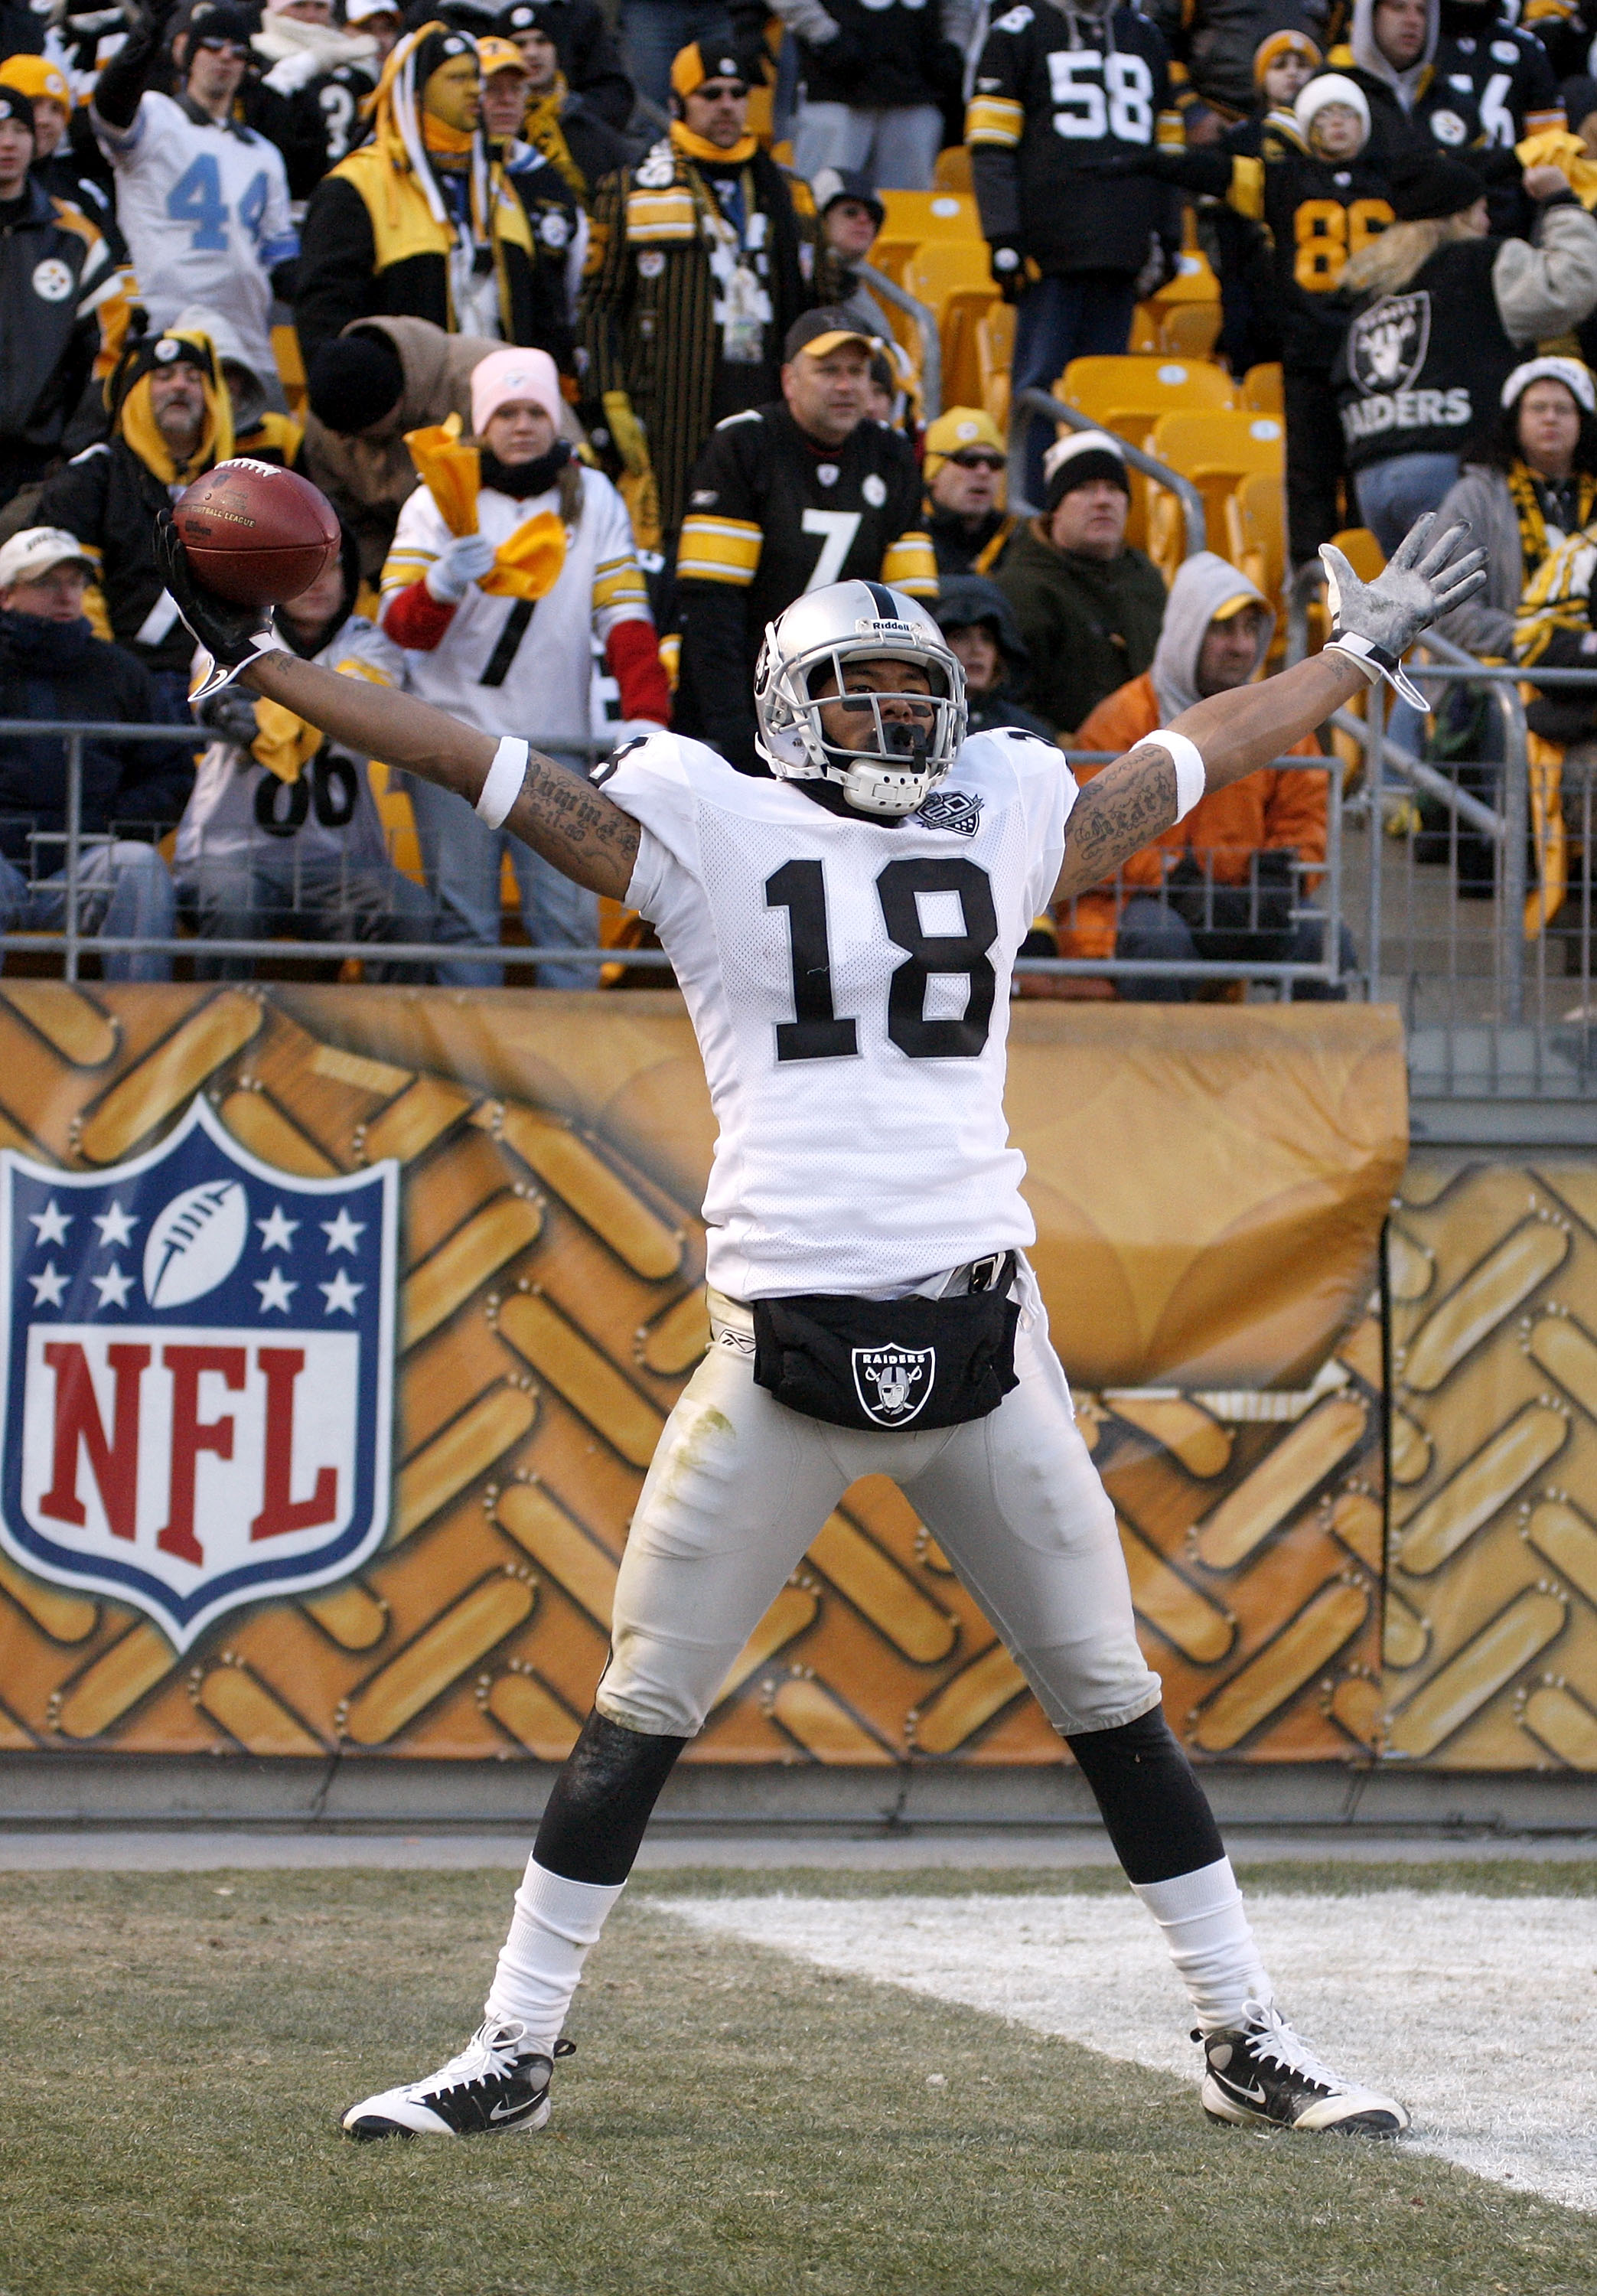 PITTSBURGH - DECEMBER 06:  Louis Murphy #18 of the Oakland Raiders celebrates a fourth quarter touchdown while playing the Pittsburgh Steelers on December 6, 2009 at Heinz Field in Pittsburgh, Pennsylvania. Oakland won the game 27-24.  (Photo by Gregory S